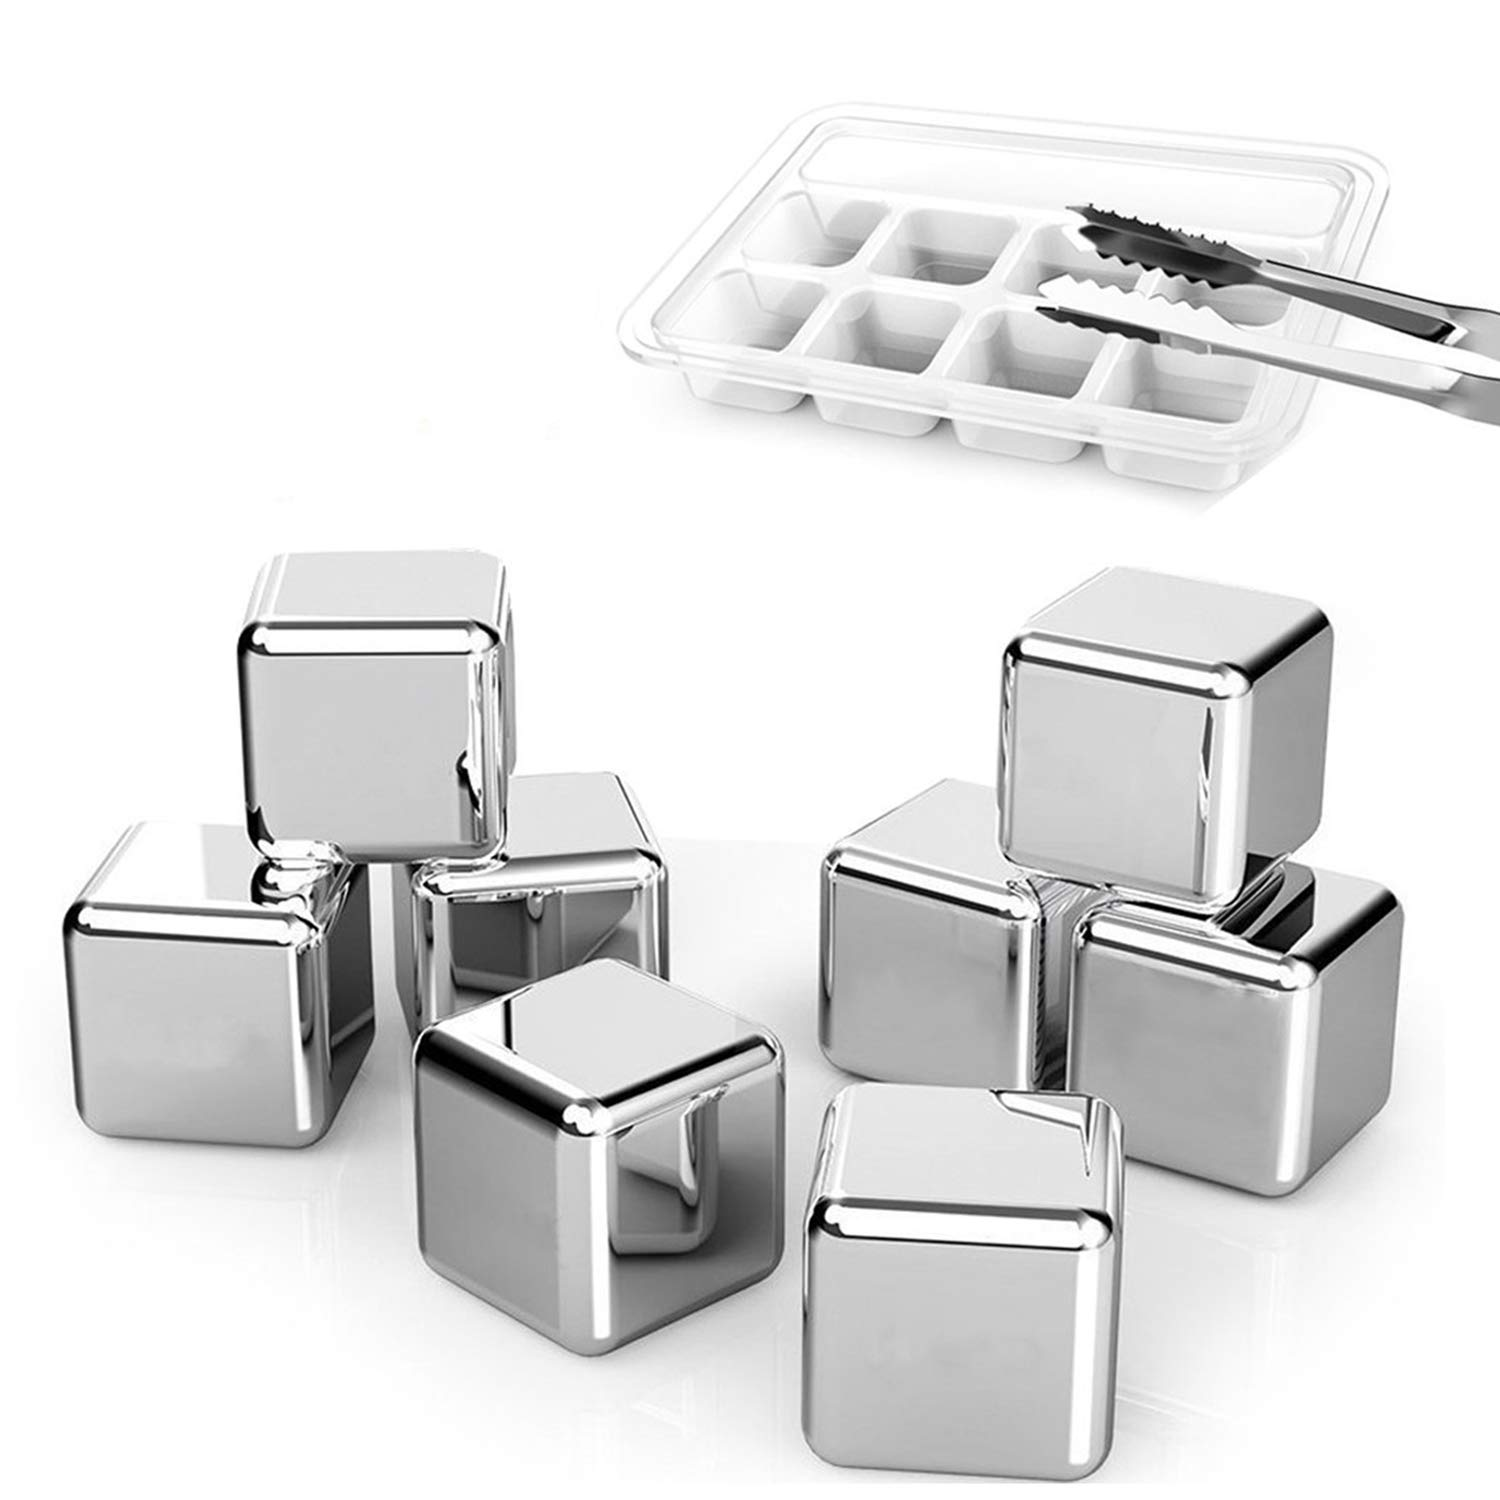 Exclusive Stainless Steel Whiskey Stones - High Cooling technology Ice Cubes Chilling Rocks Reusable Wine Stone Durable Beer Drink Freezer Cooler Rock